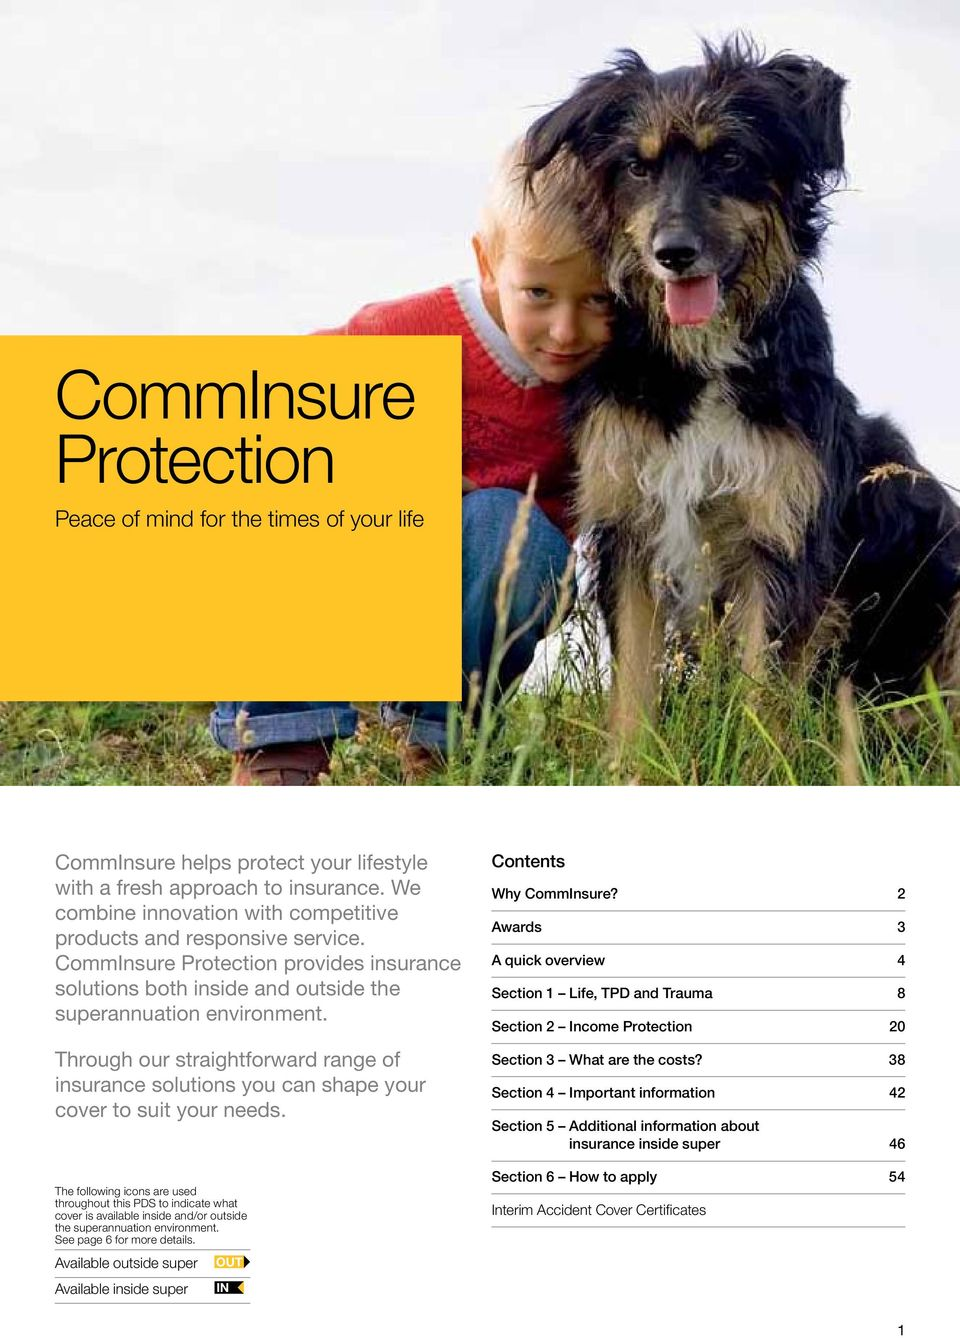 Through our straightforward range of insurance solutions you can shape your cover to suit your needs. Contents Why CommInsure?